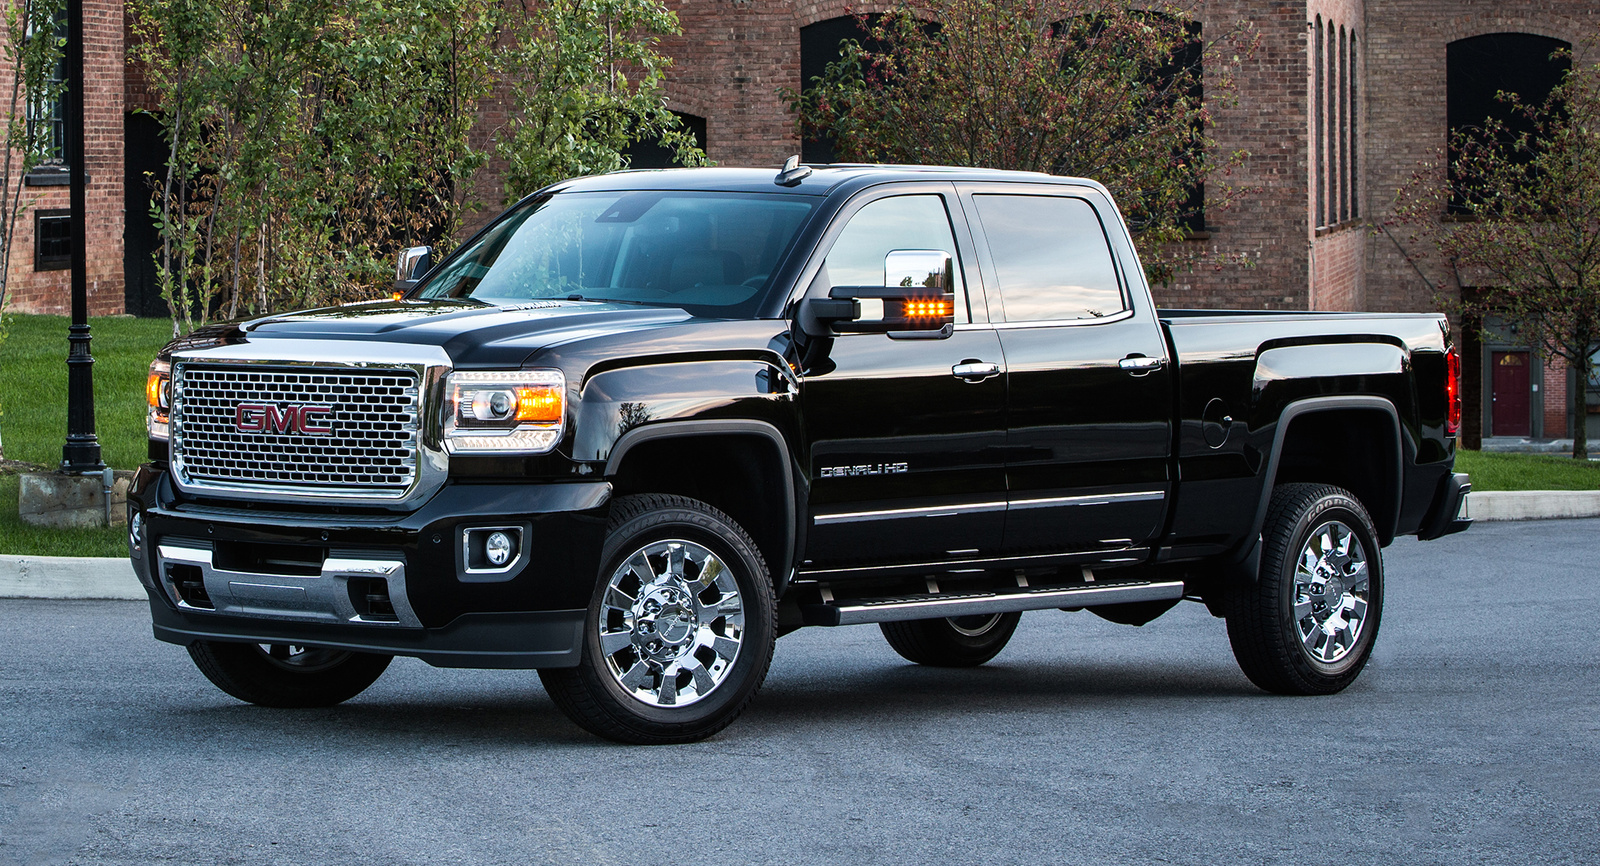 2016_gmc_sierra_2500hd-pic-5805448671266766944-1600x1200.jpeg